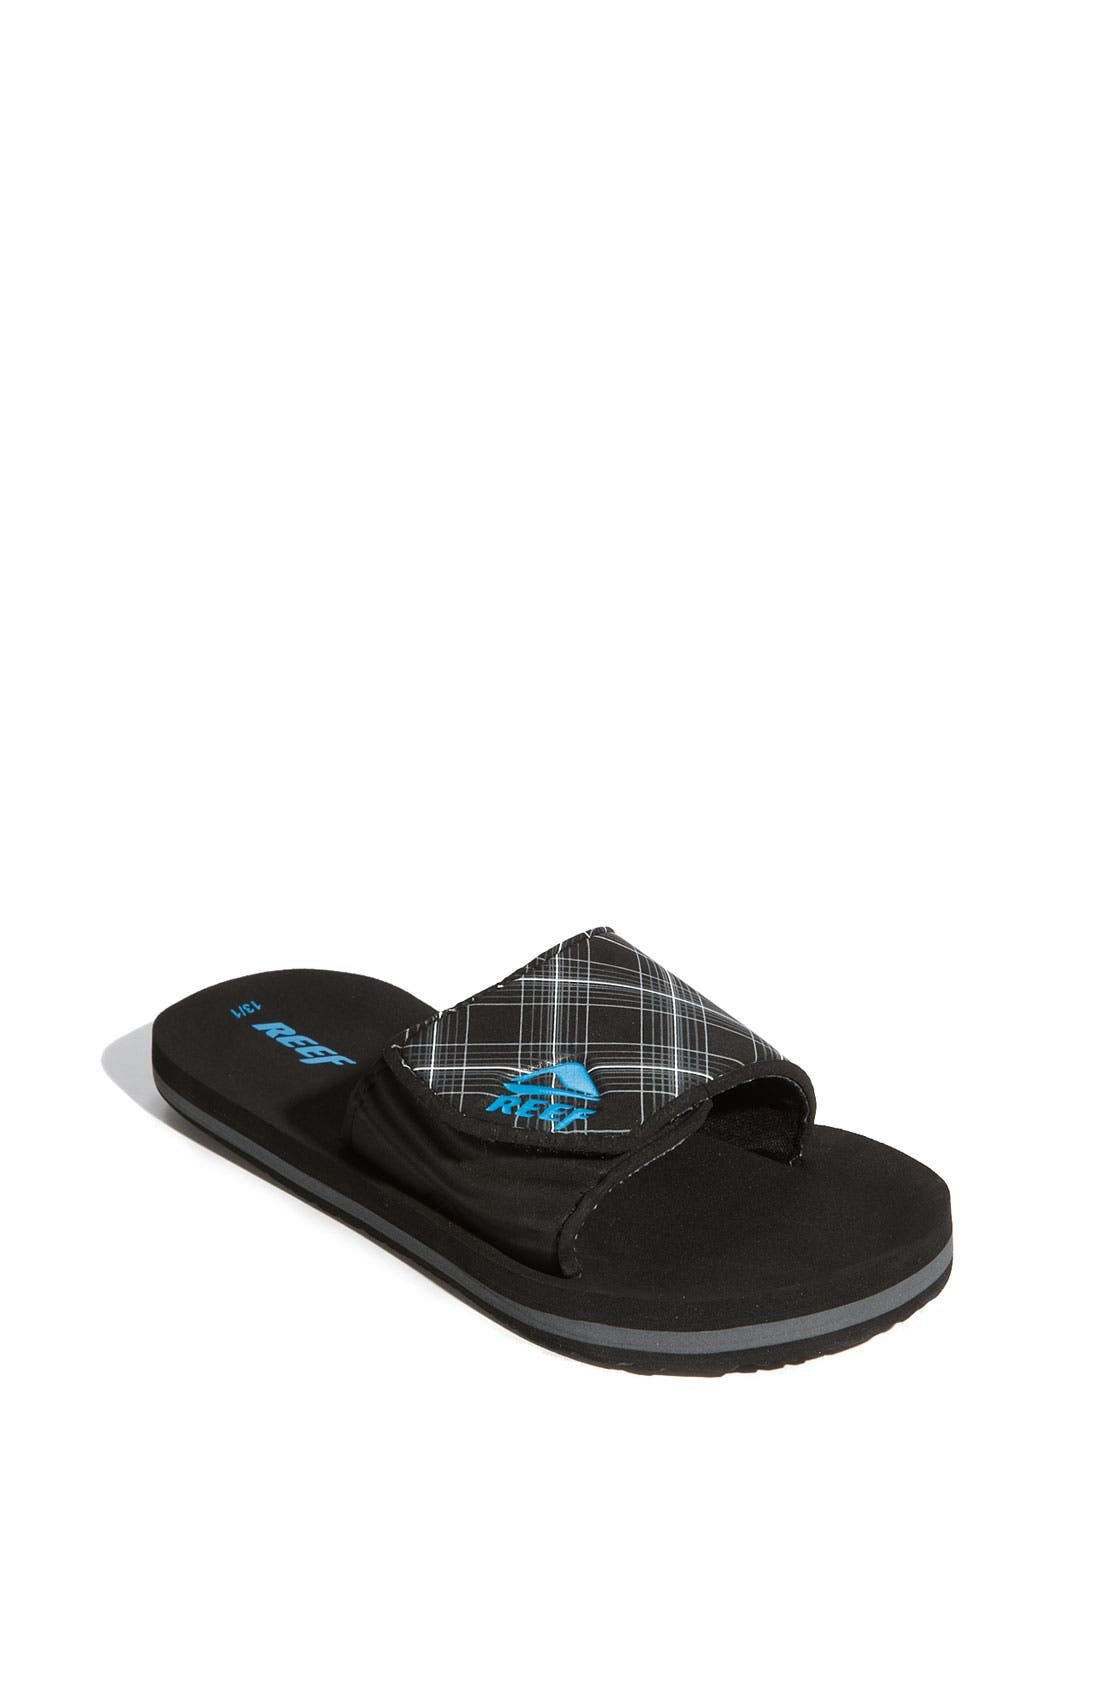 Main Image - Reef 'Grom Ahi' Slide Sandal (Walker, Toddler, Little Kid & Big Kid)